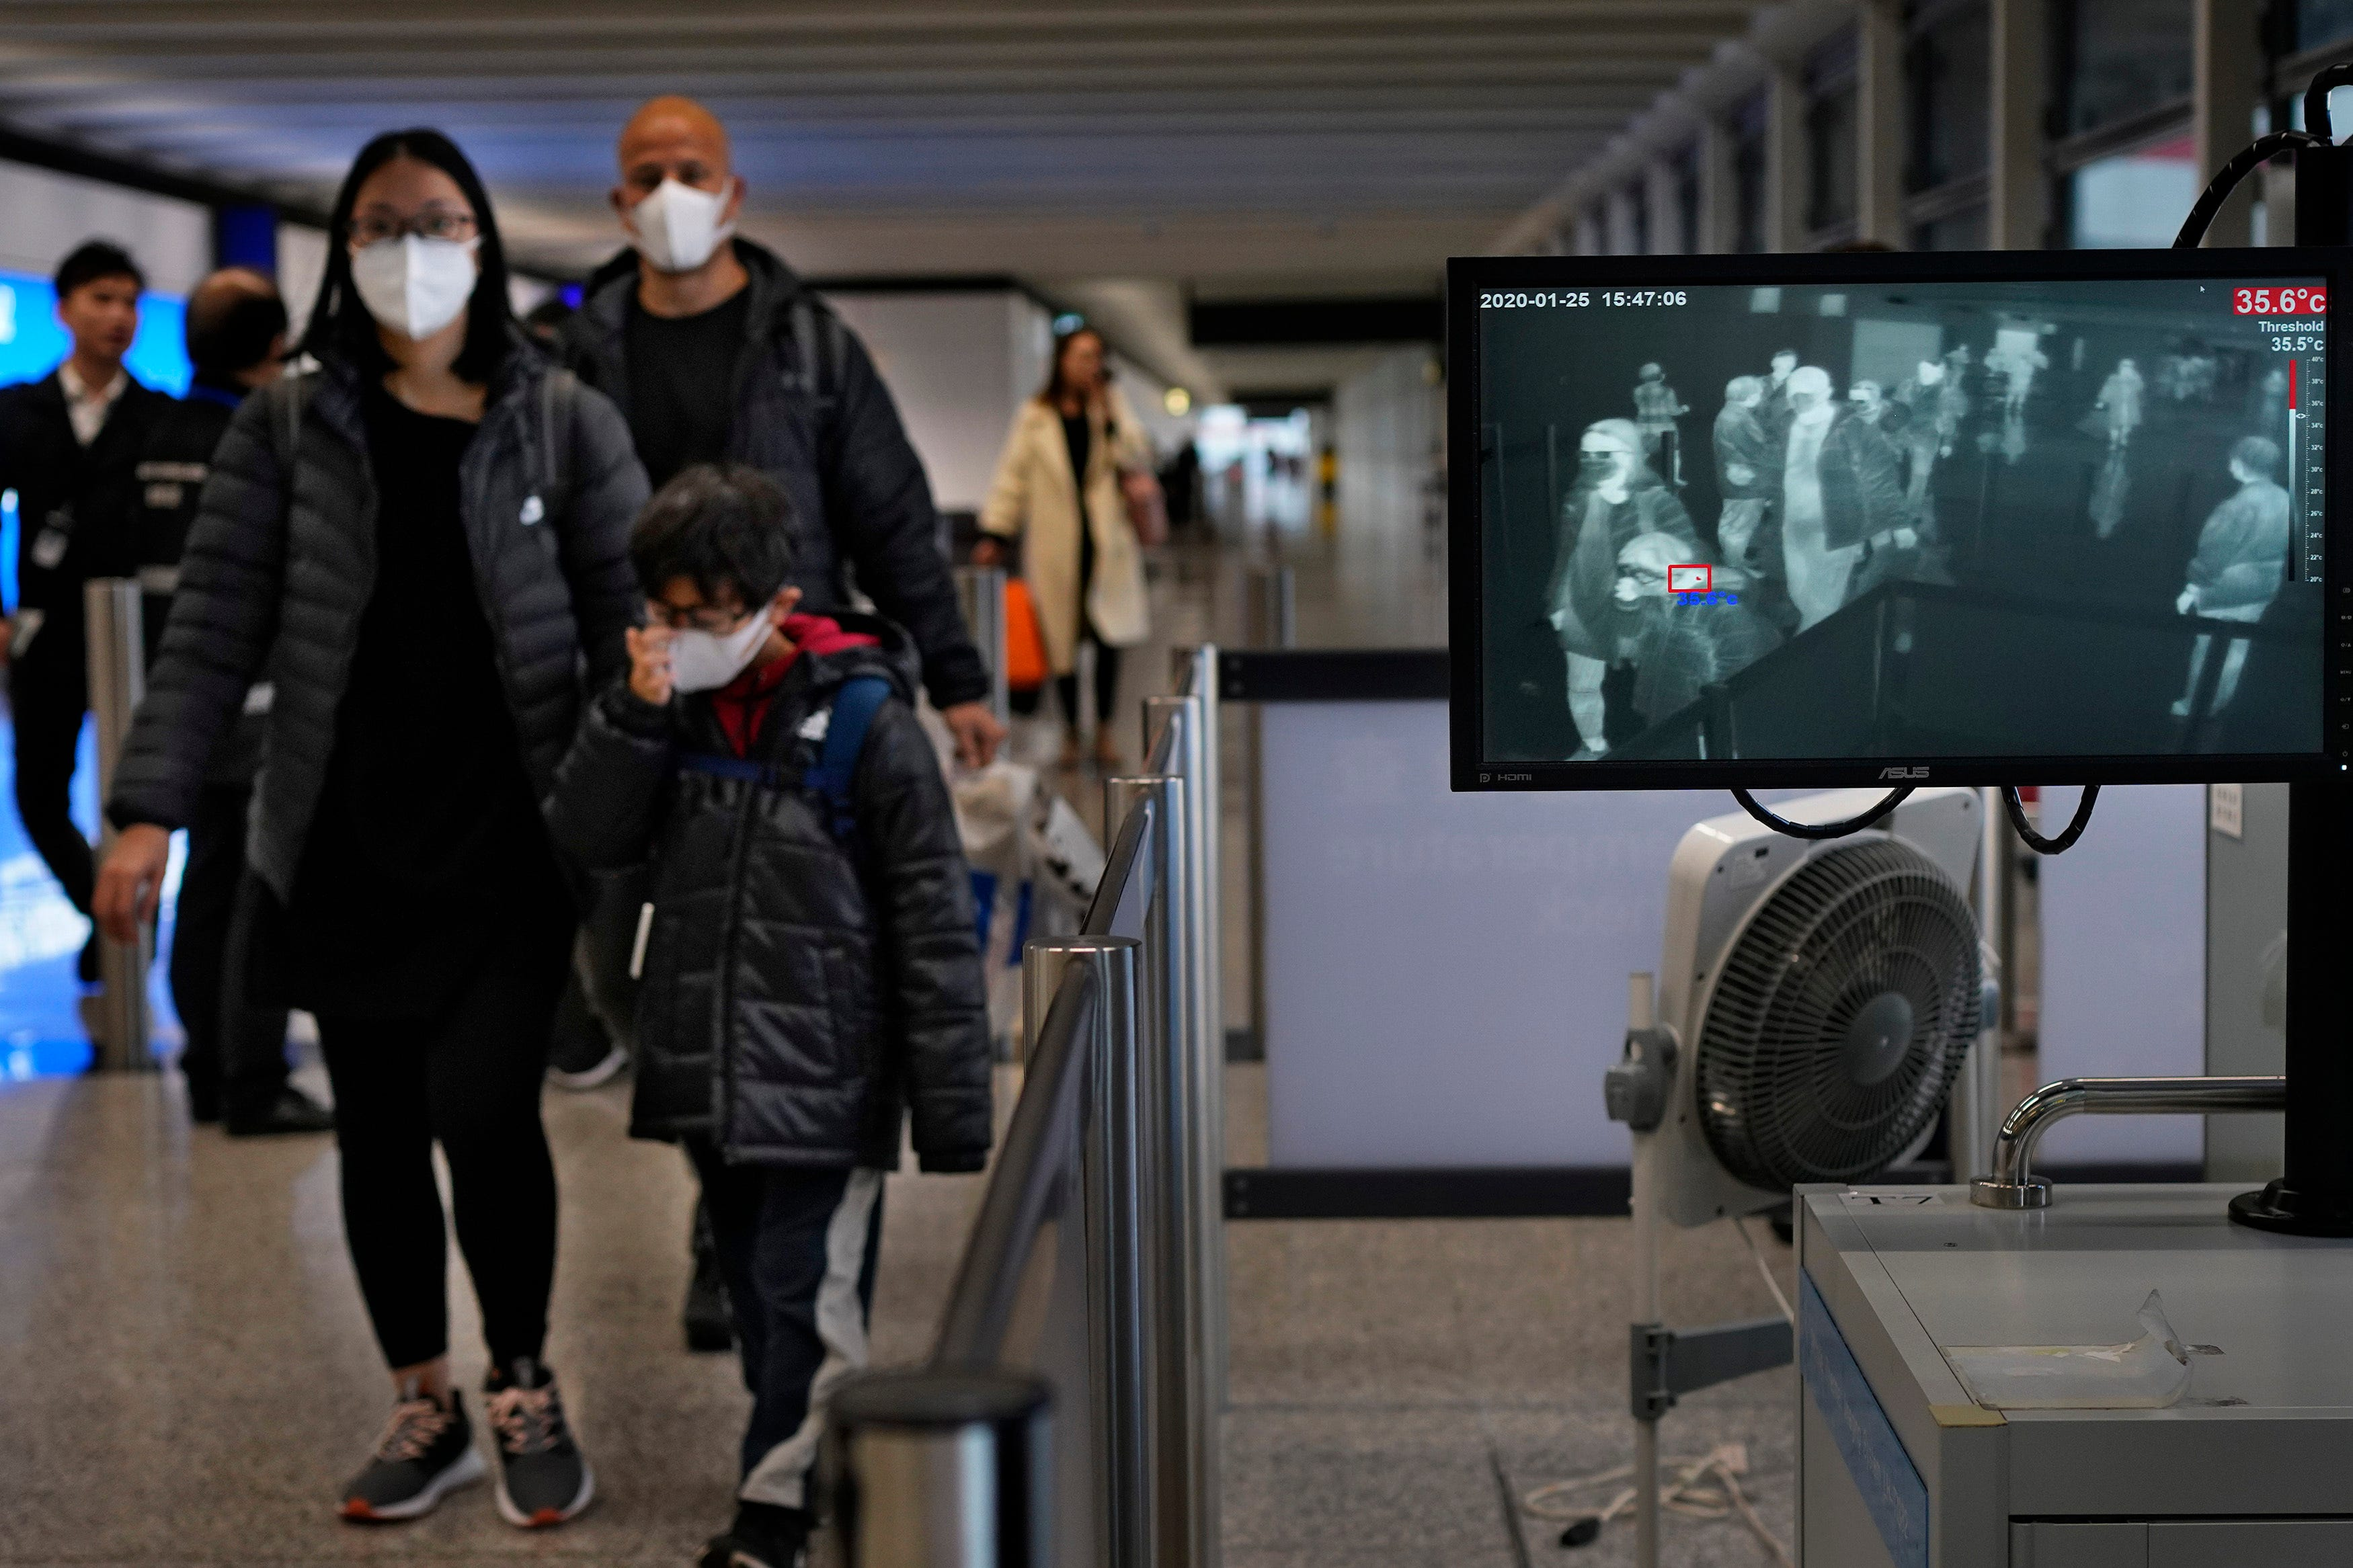 Slide 10 of 85: I'm scheduled to fly Feb. 17 from LAX to Thailand connecting through Hong Kong. I know the current coronavirus situation seems to be changing daily. How safe is it to be traveling by airplane and through these airports?  On Jan. 30,the World Health Organizationdeclared 2019-nCOVa world crisis and the U.S. State Departmentissued its most severe warning level for China, advising Americans not to travel to any part of China unless absolutely necessary.  Following the recommendation of the U.S. State Department is wise. But if you must travel, there are other connection points you can use to get to Thailand. Contact your airline and see what other cities for connections are available outside China.